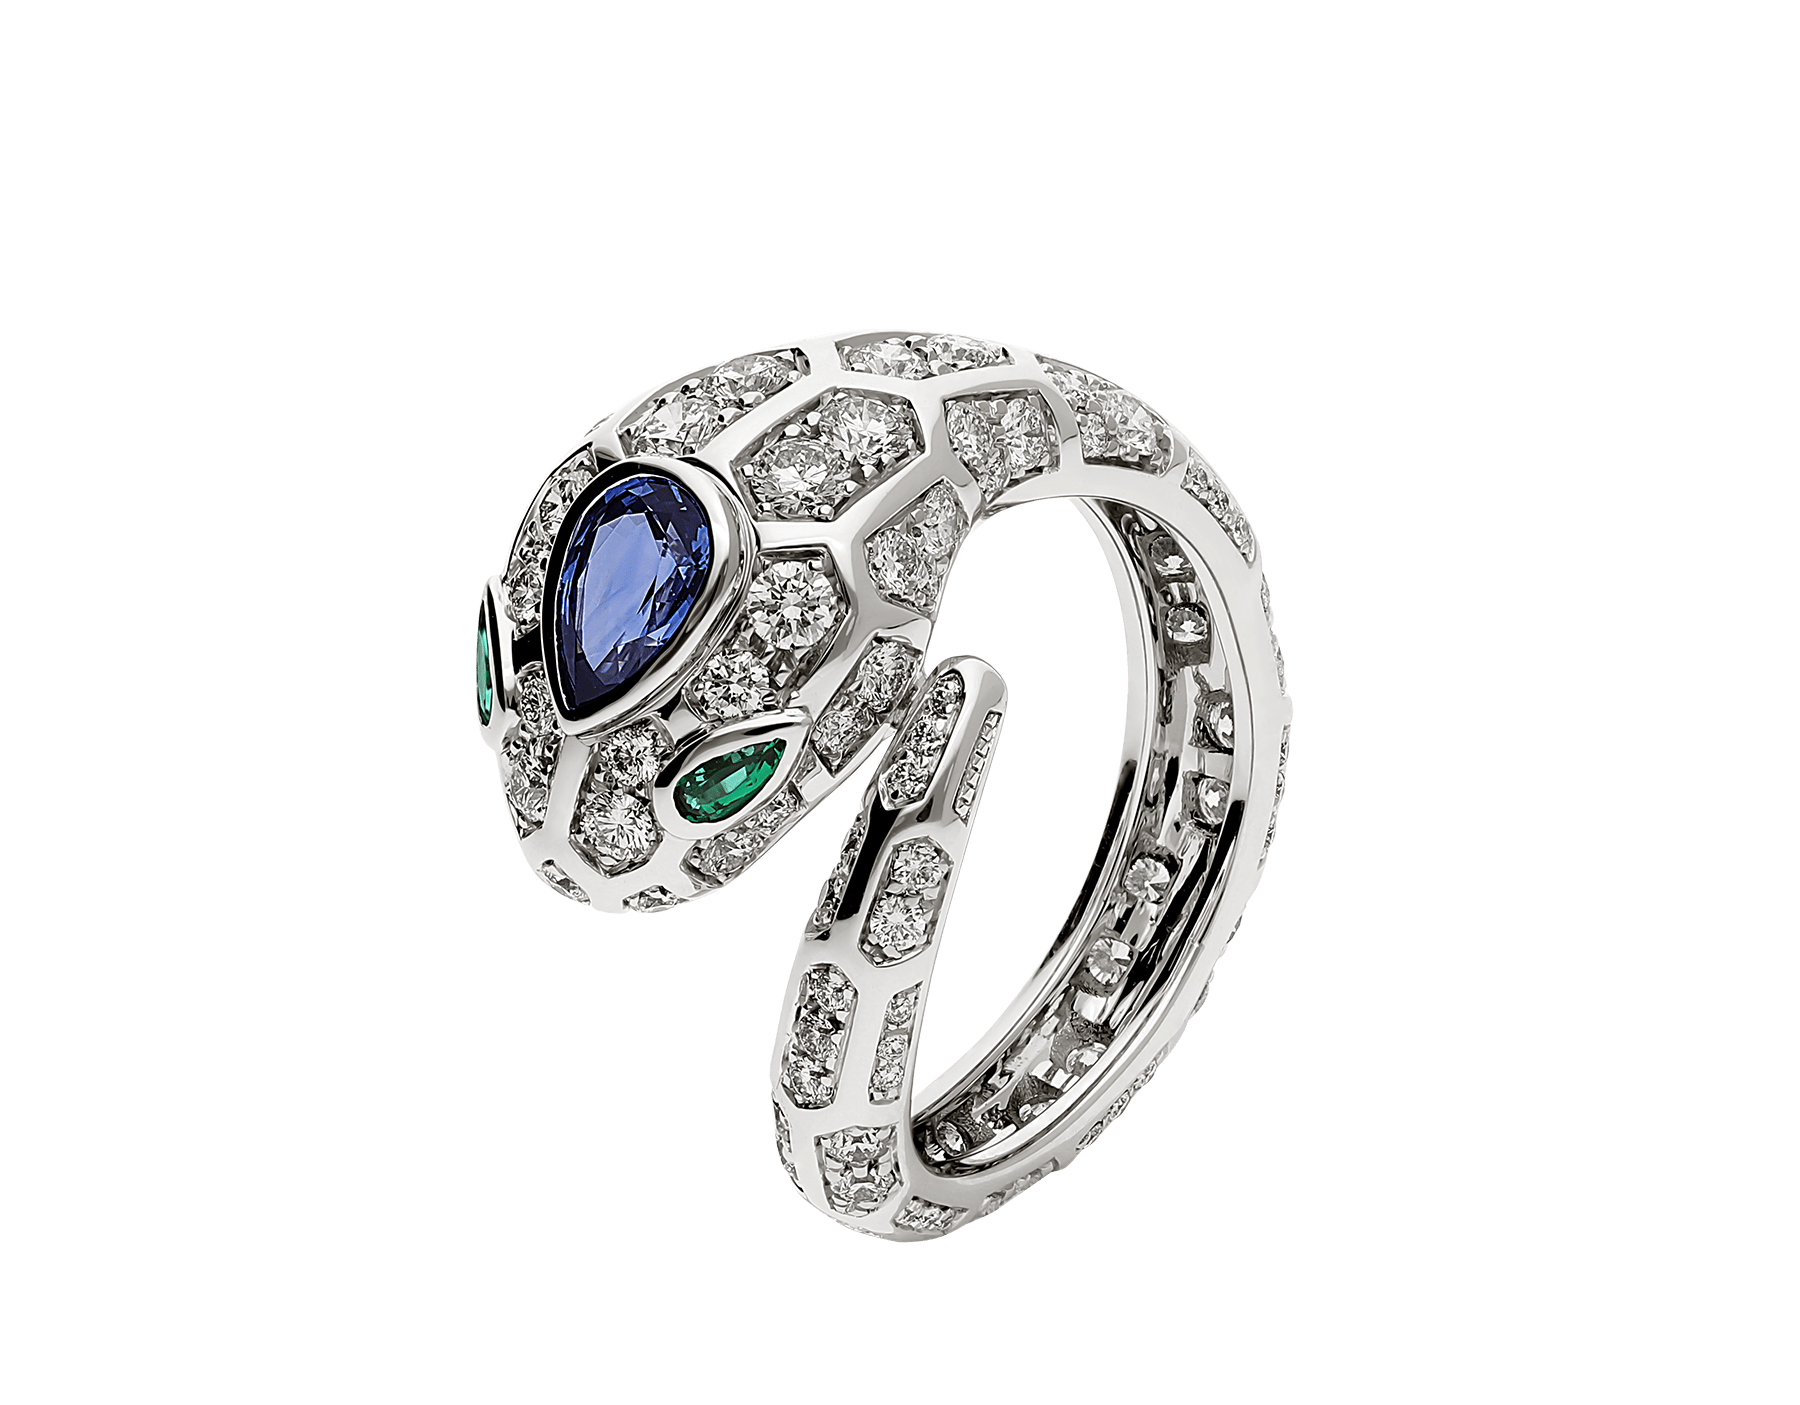 Serpenti 18 kt white gold ring set with a blue sapphire on the head, emerald eyes and pavé diamonds AN858337 image 1